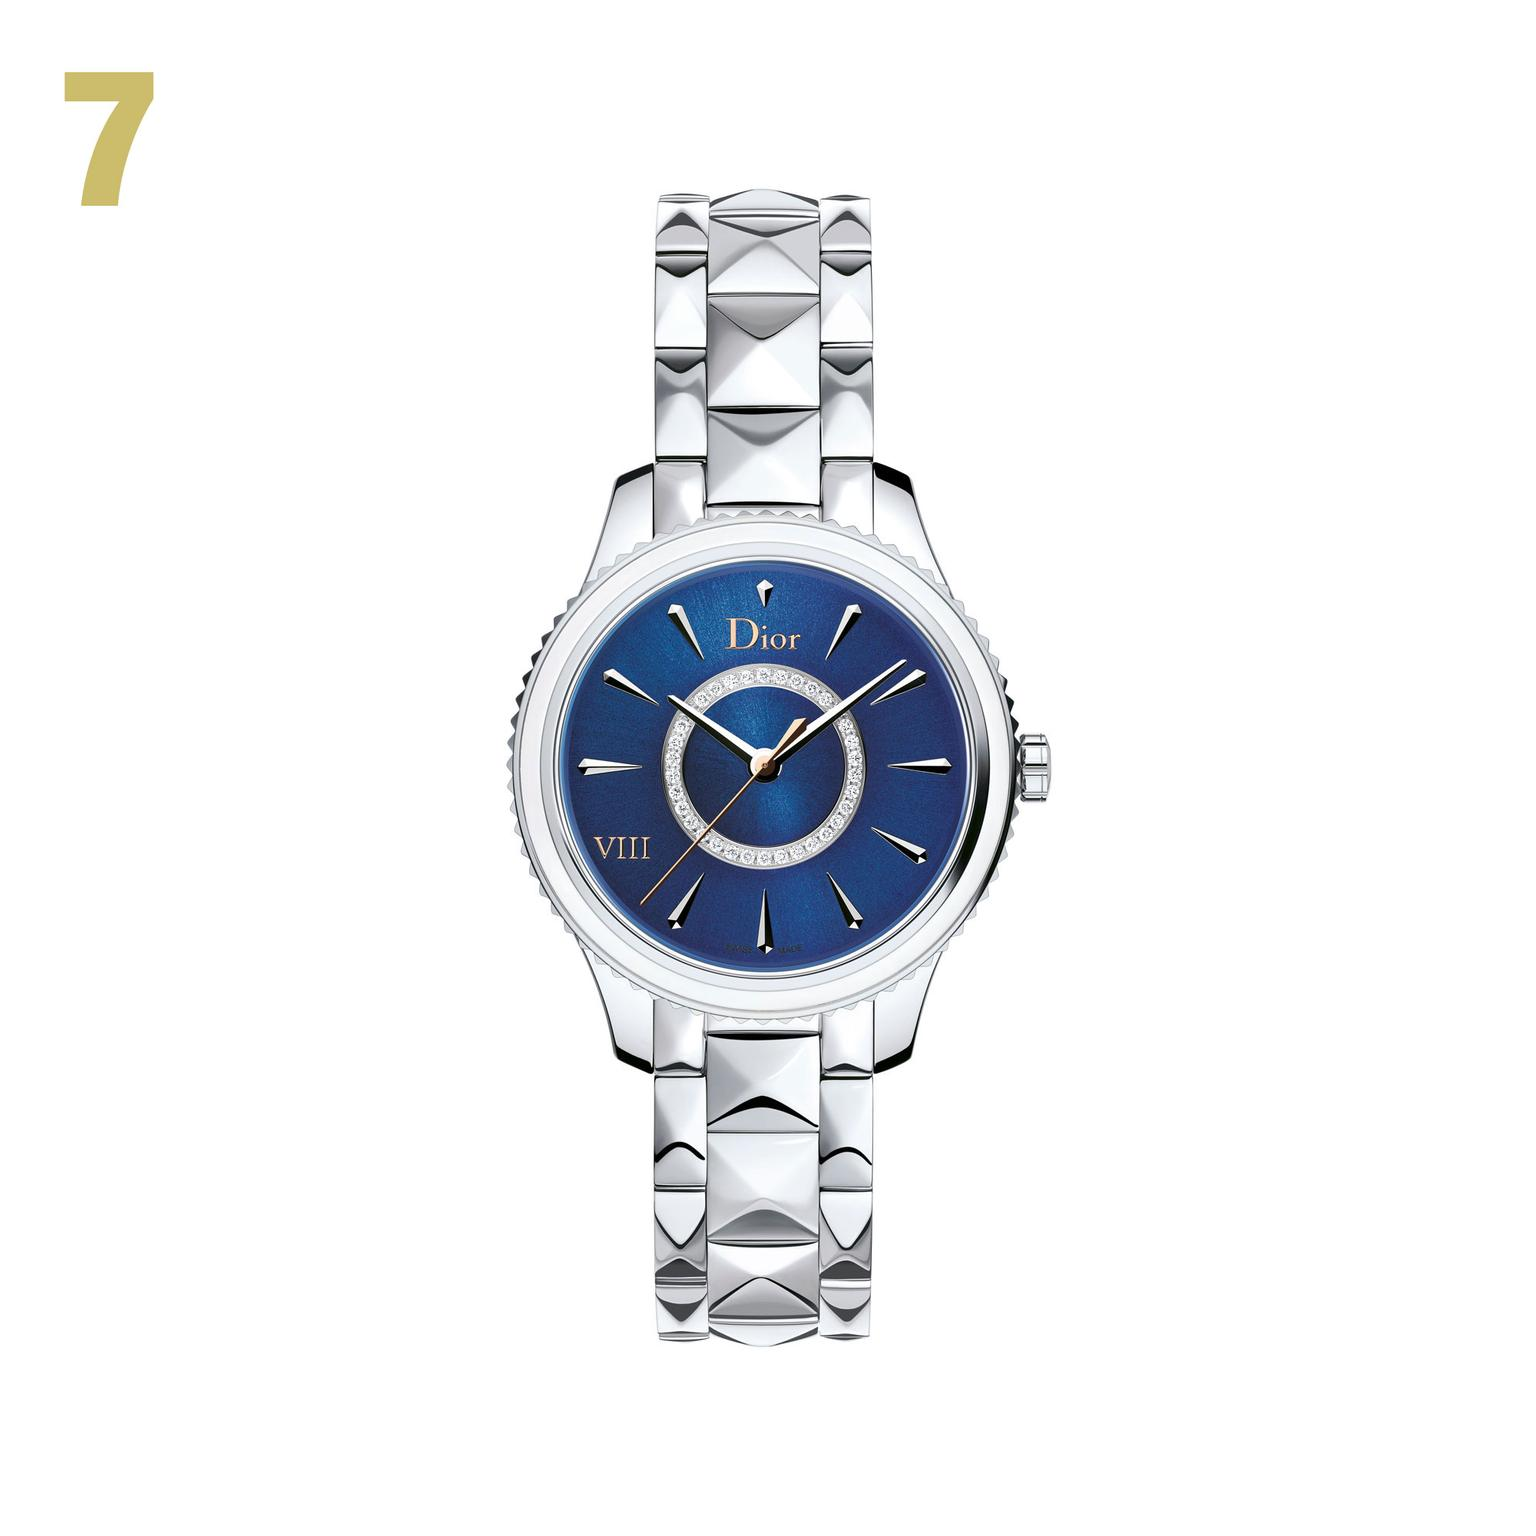 7 Dior VII Montaigne stainless steel watch with blue lacquer dial